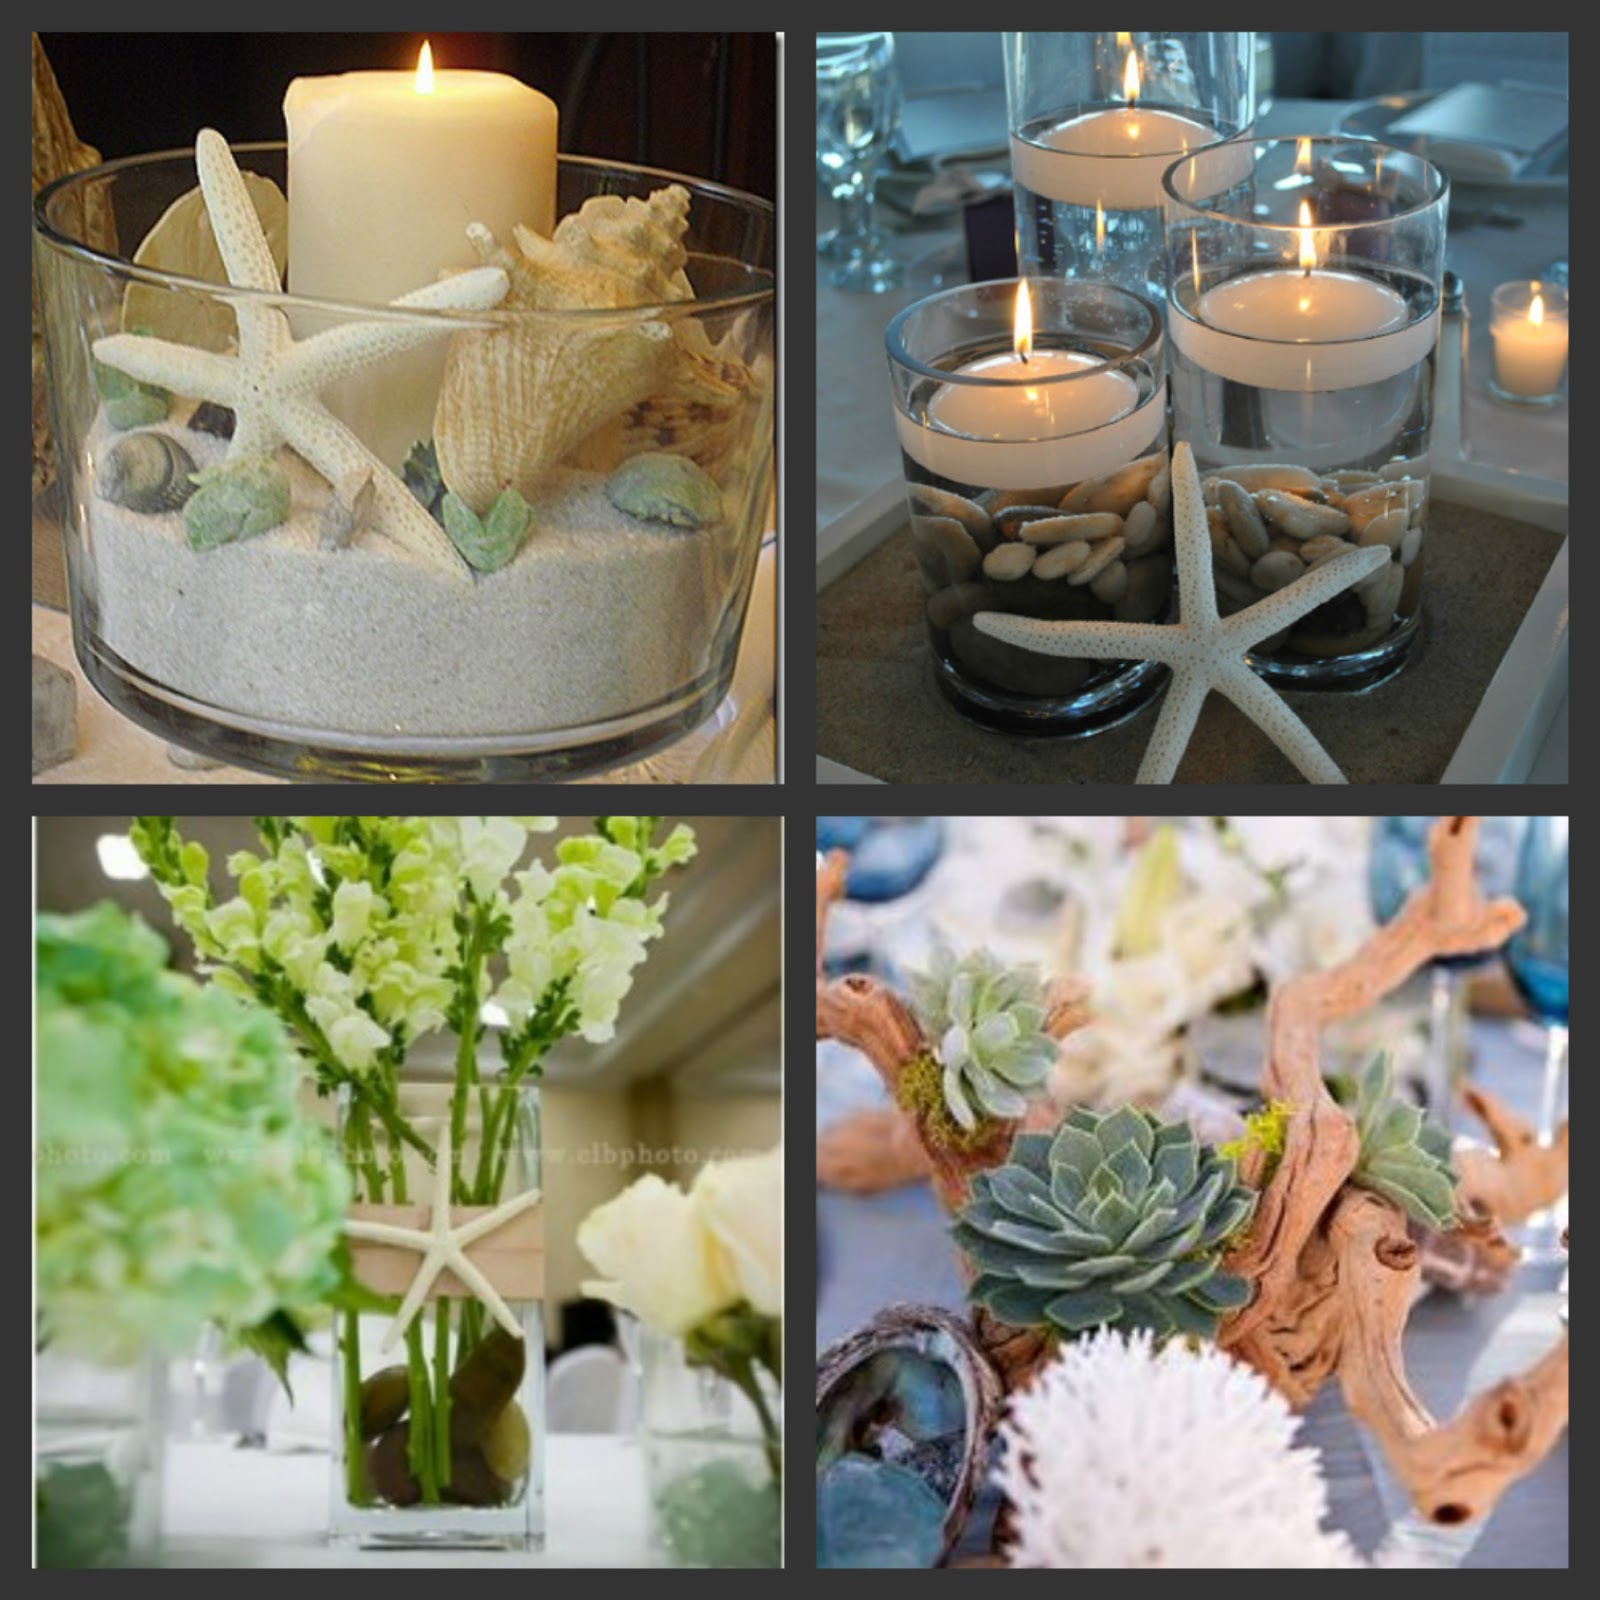 Weddings are fun beach wedding centerpiece ideas